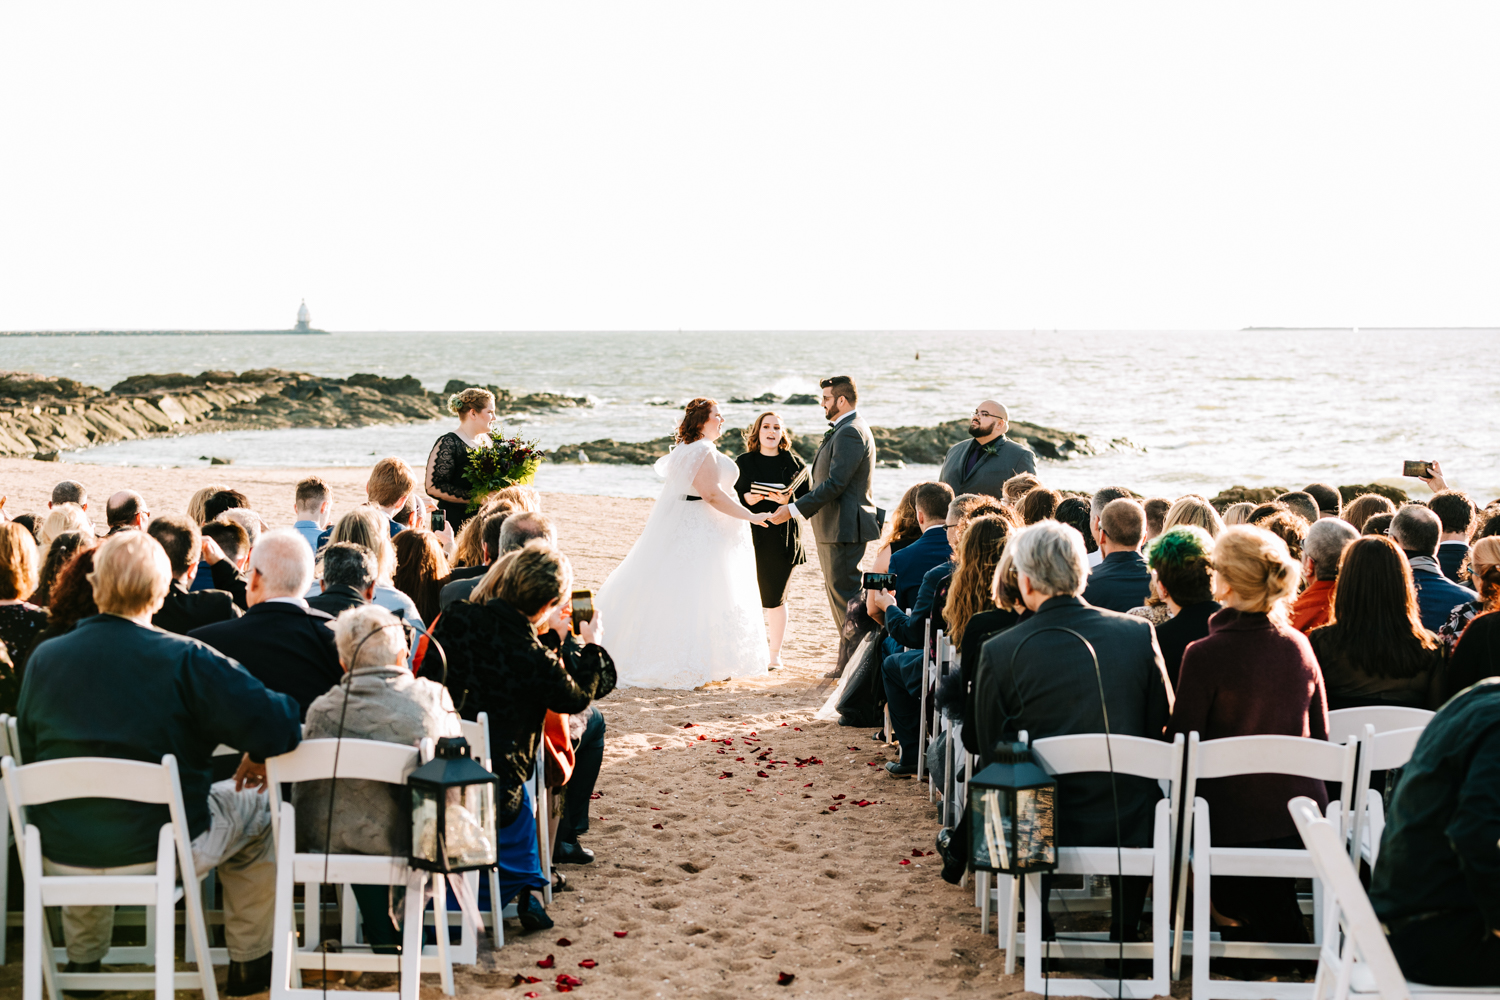 Guests watching bride and groom's ceremony on beach